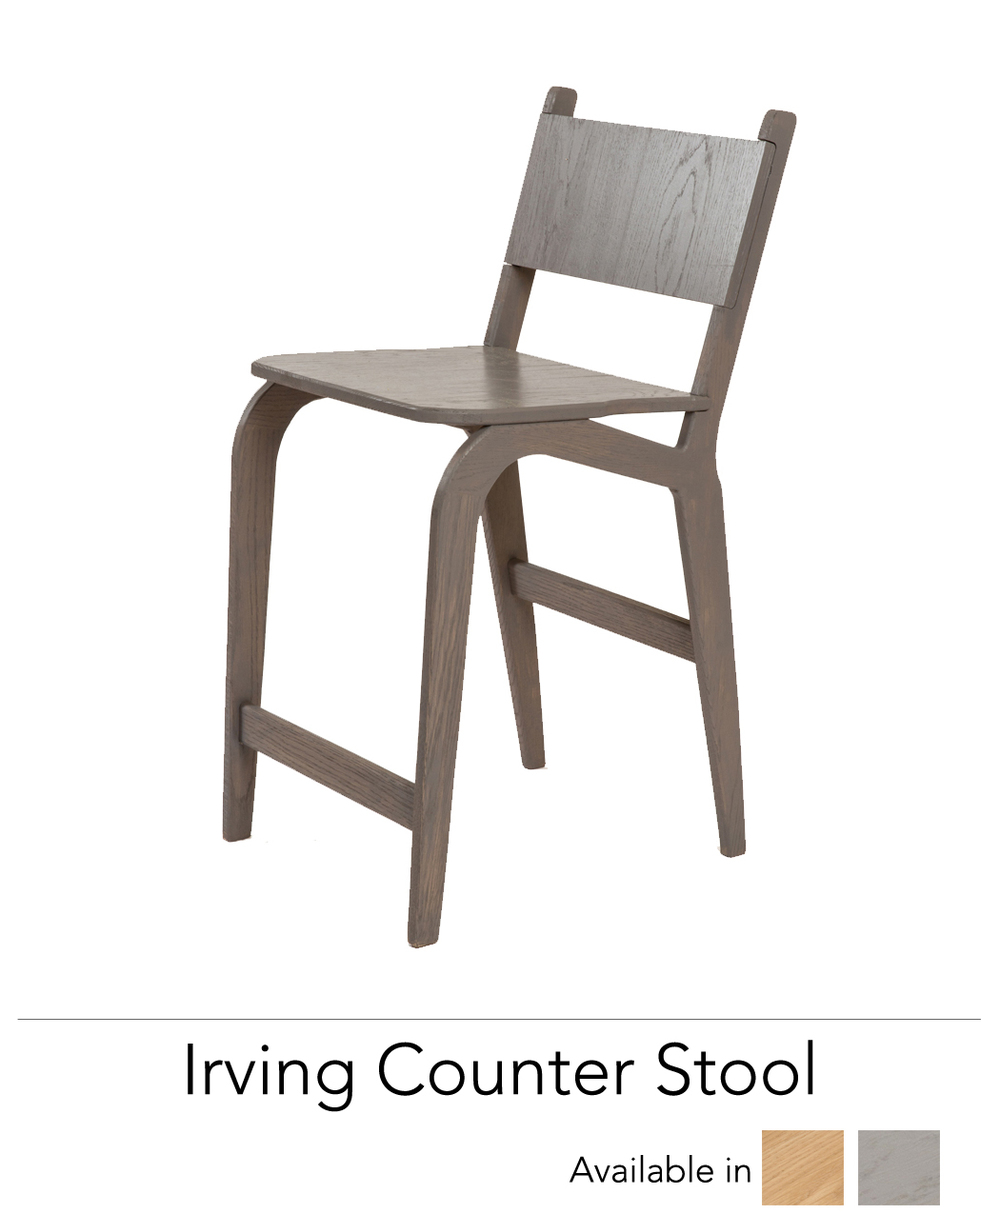 Irving Counter Stool Front New.jpg